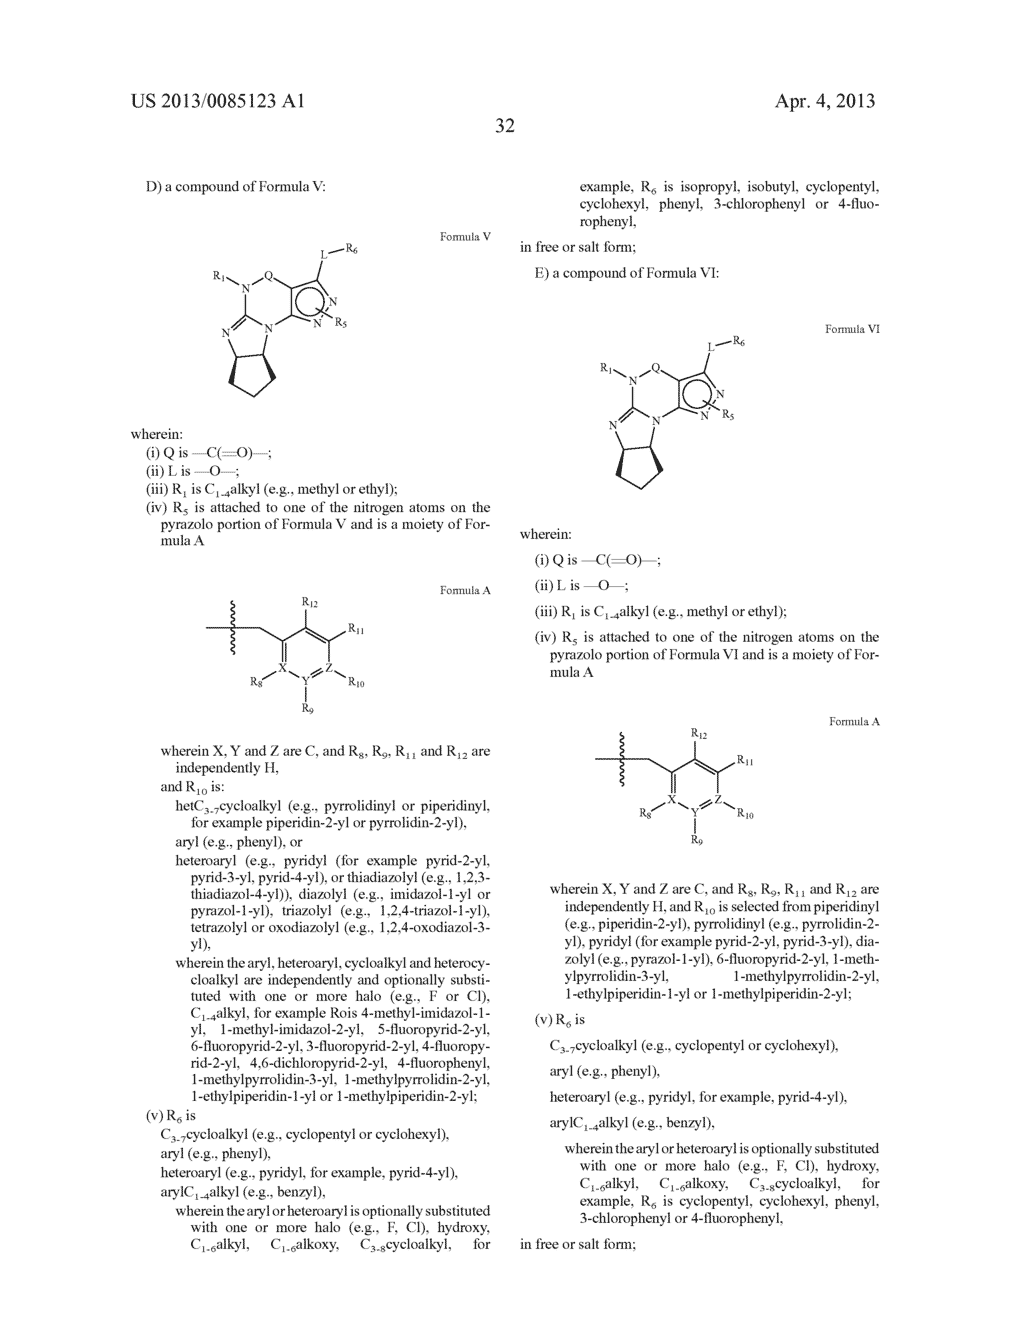 ORGANIC COMPOUNDS - diagram, schematic, and image 33